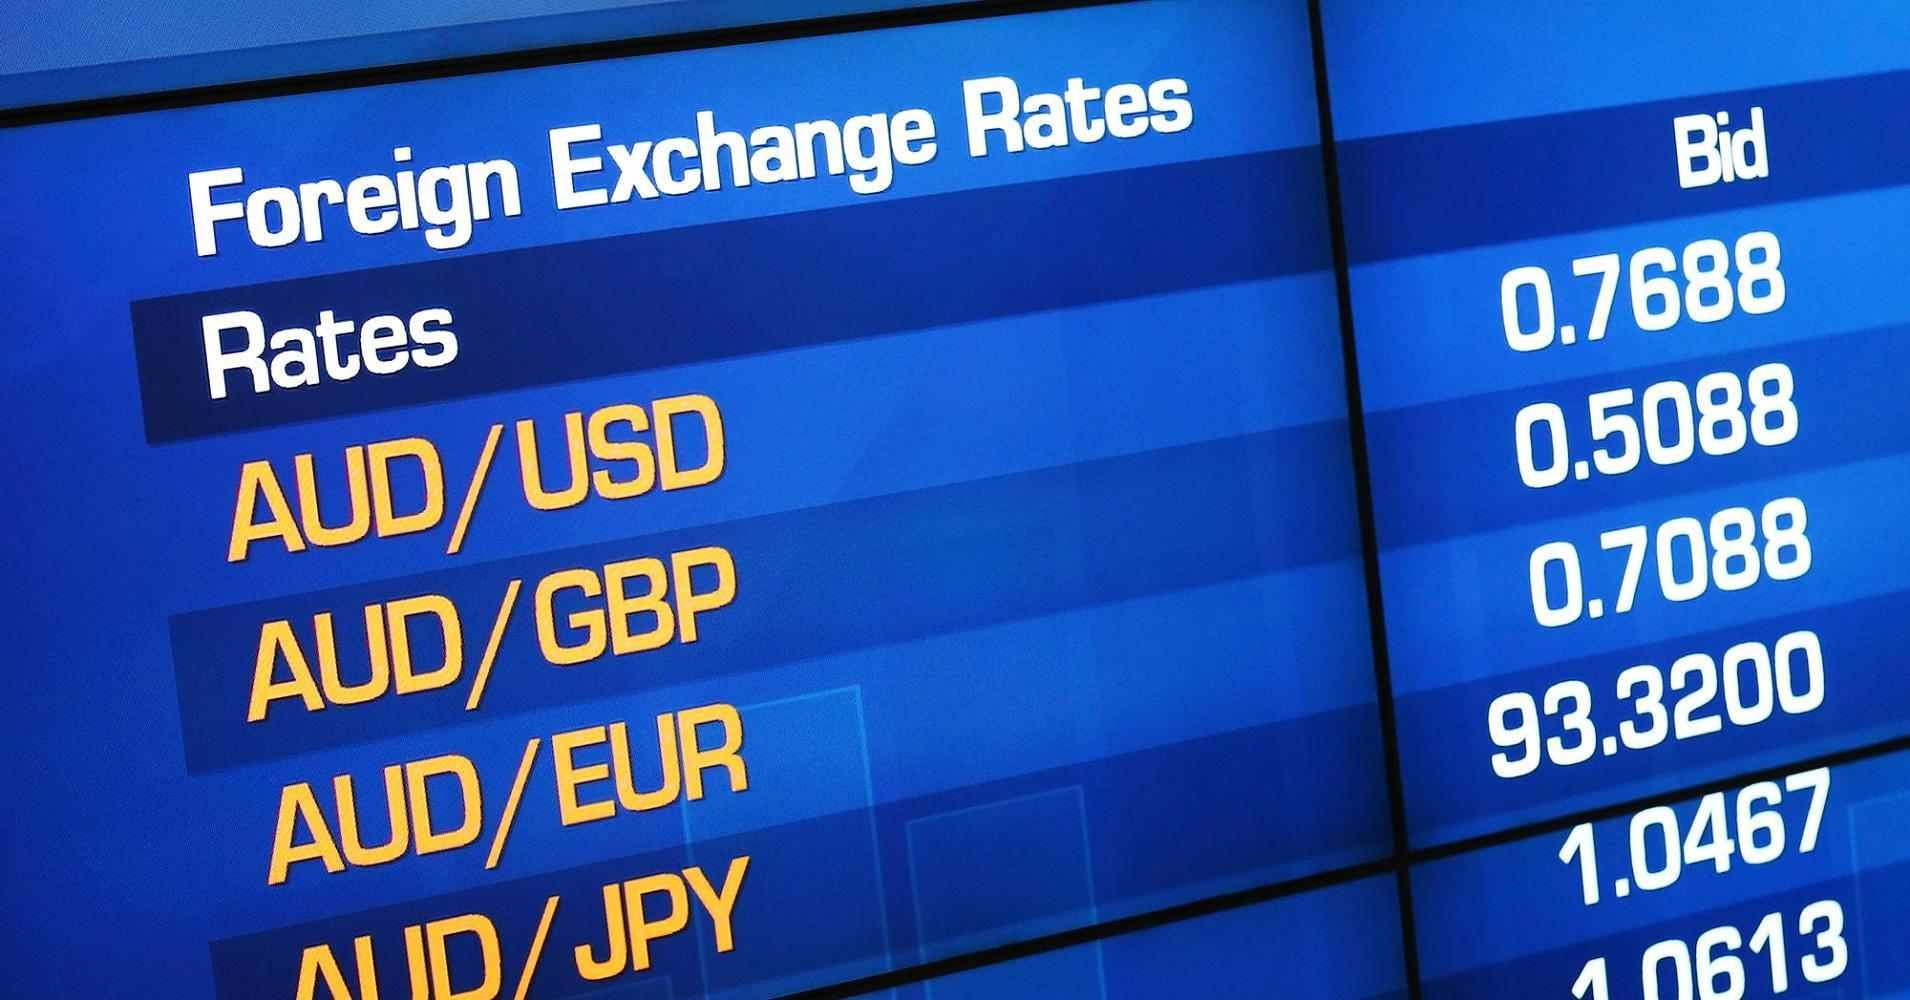 Forex scandal: After big bank fines, what's next?